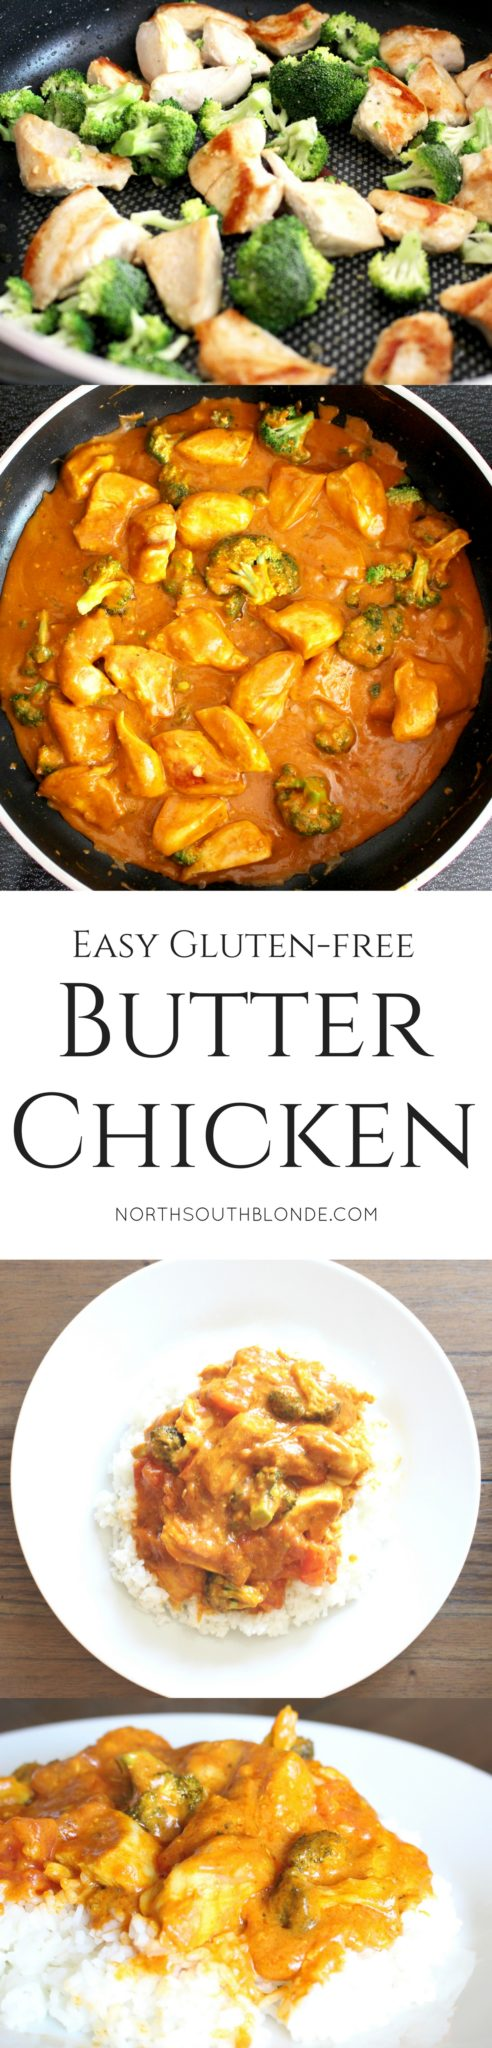 Easy gluten-free butter chicken